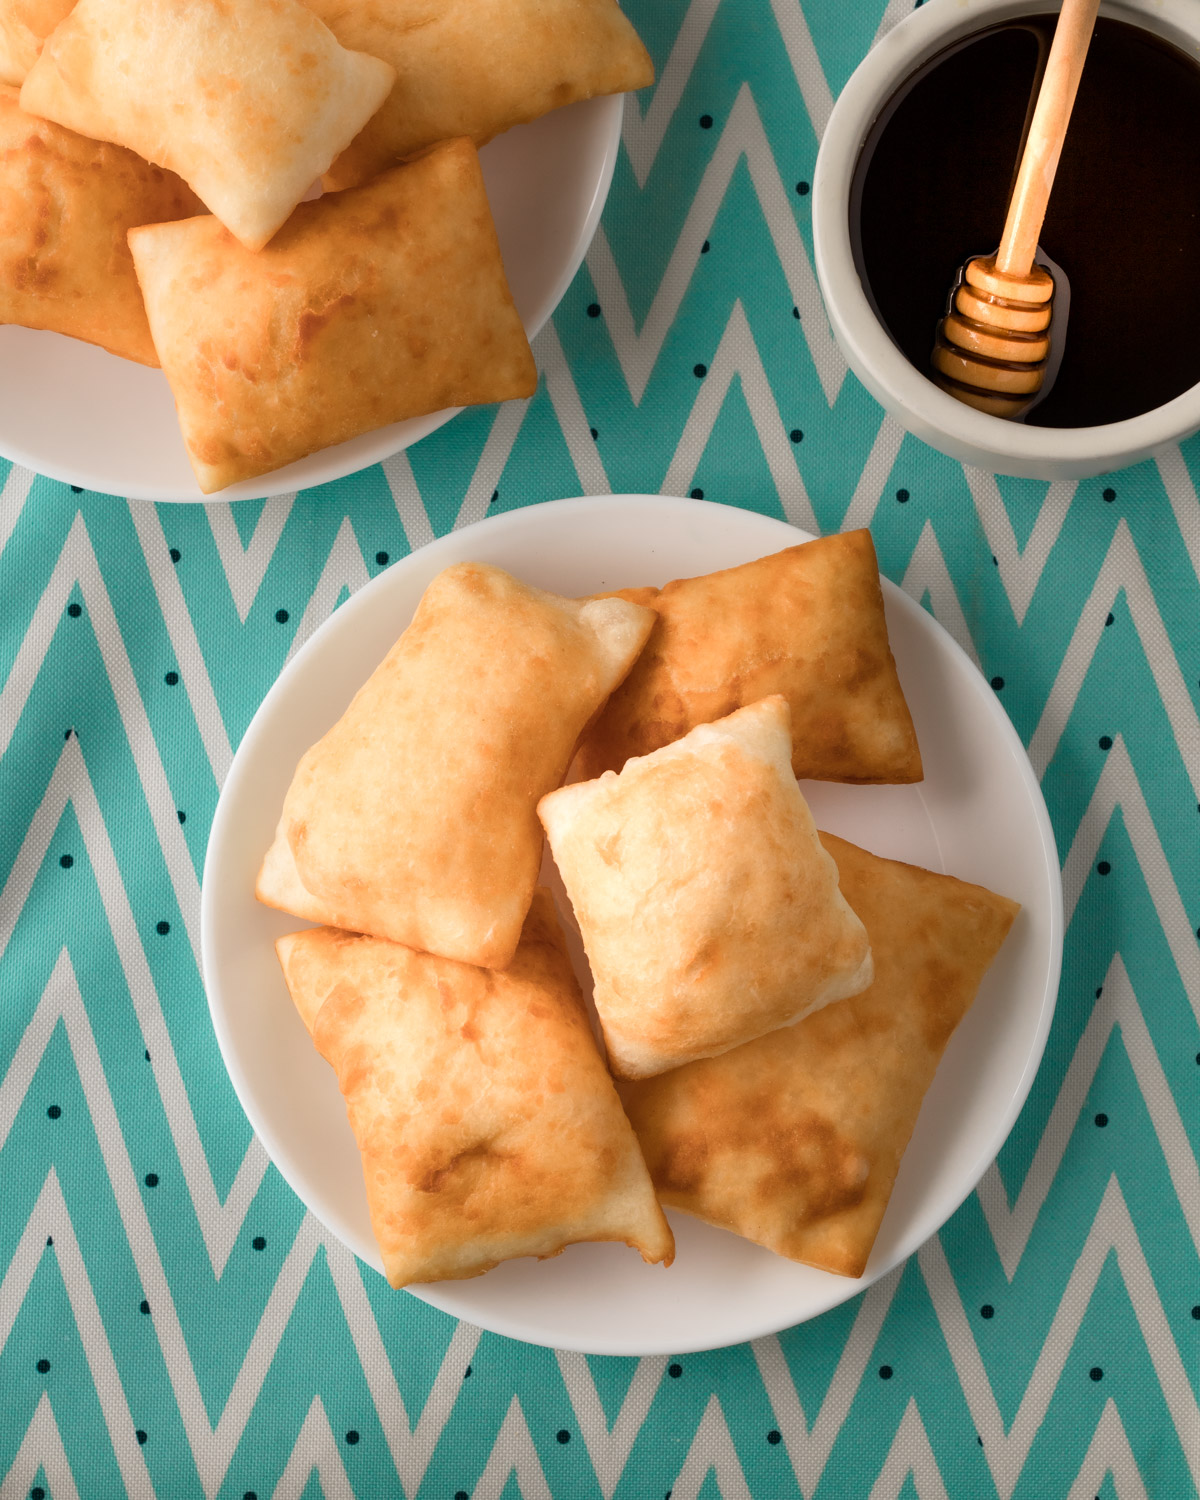 Plate of sopapillas on a teal zig zag cloth, with bowl of honey.